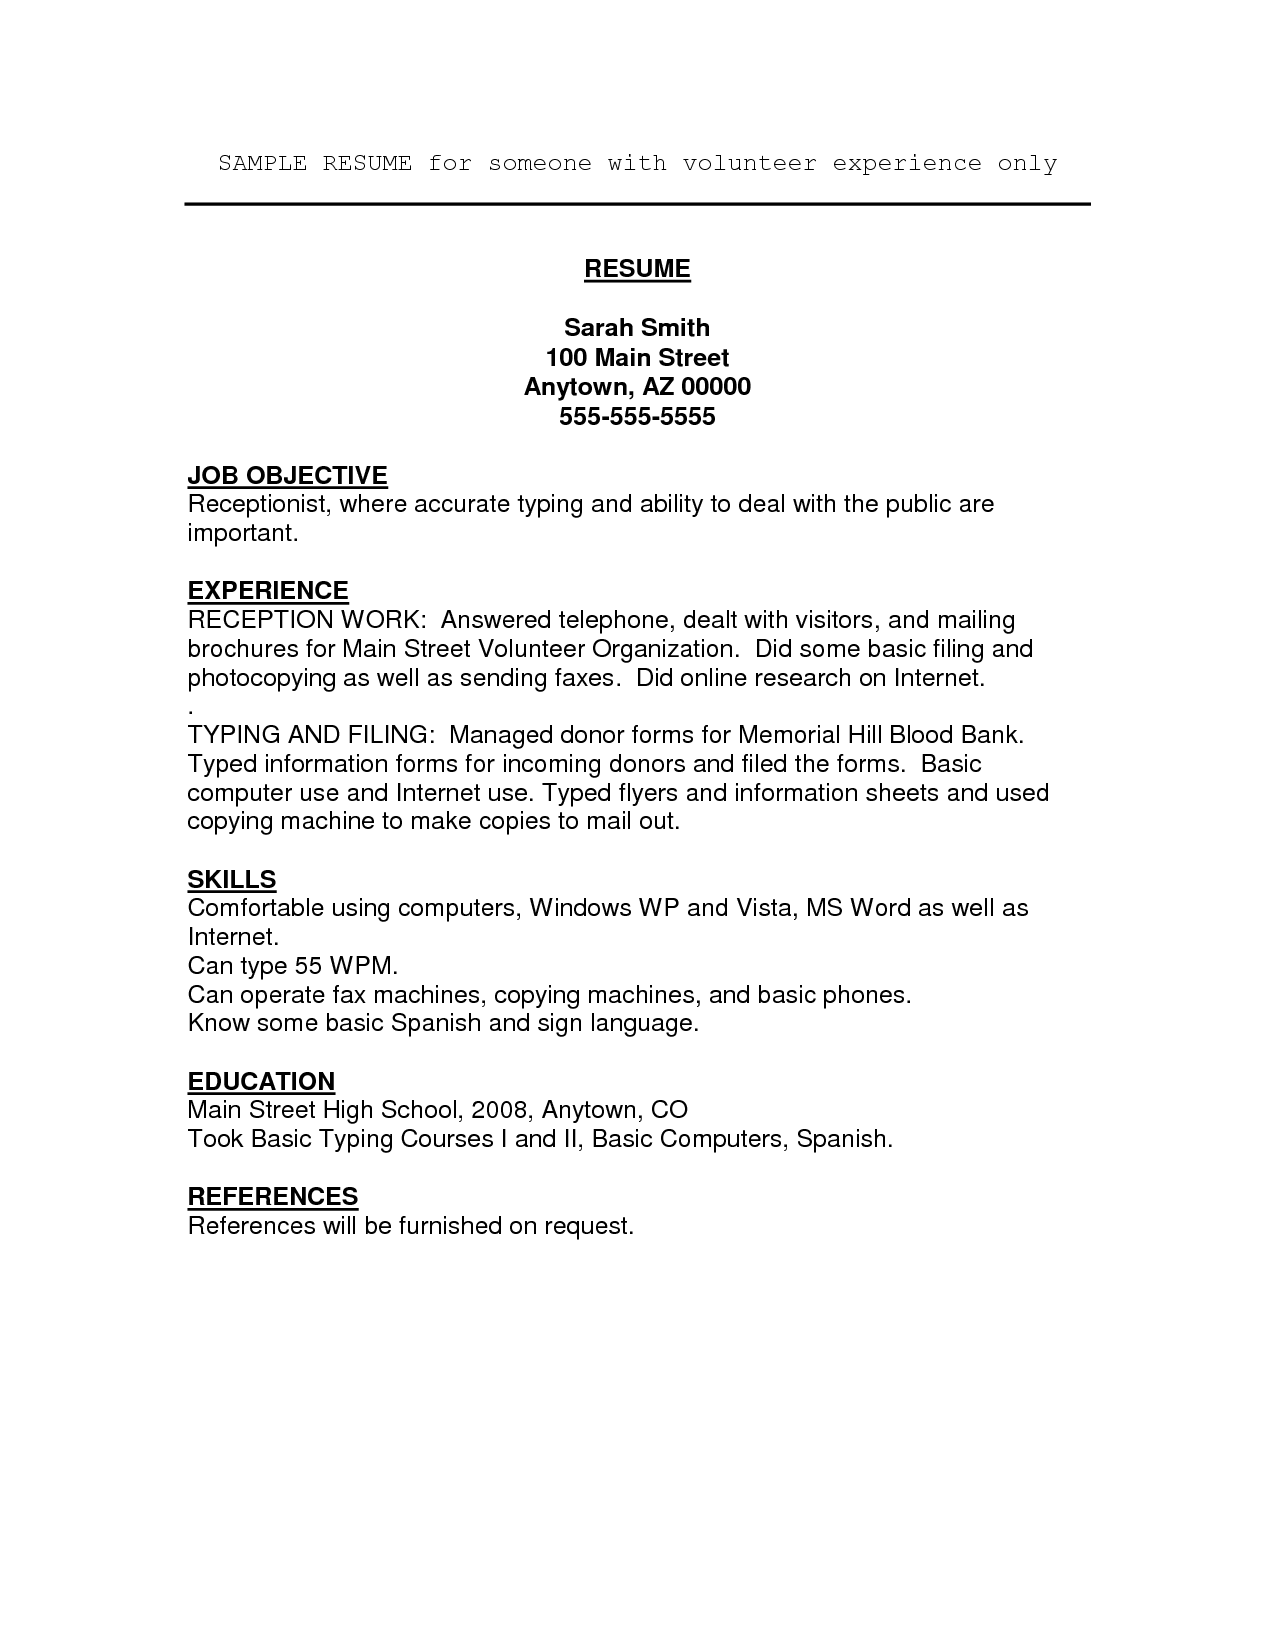 Information Sheets Templates Volunteer Work  Resume Format And Template